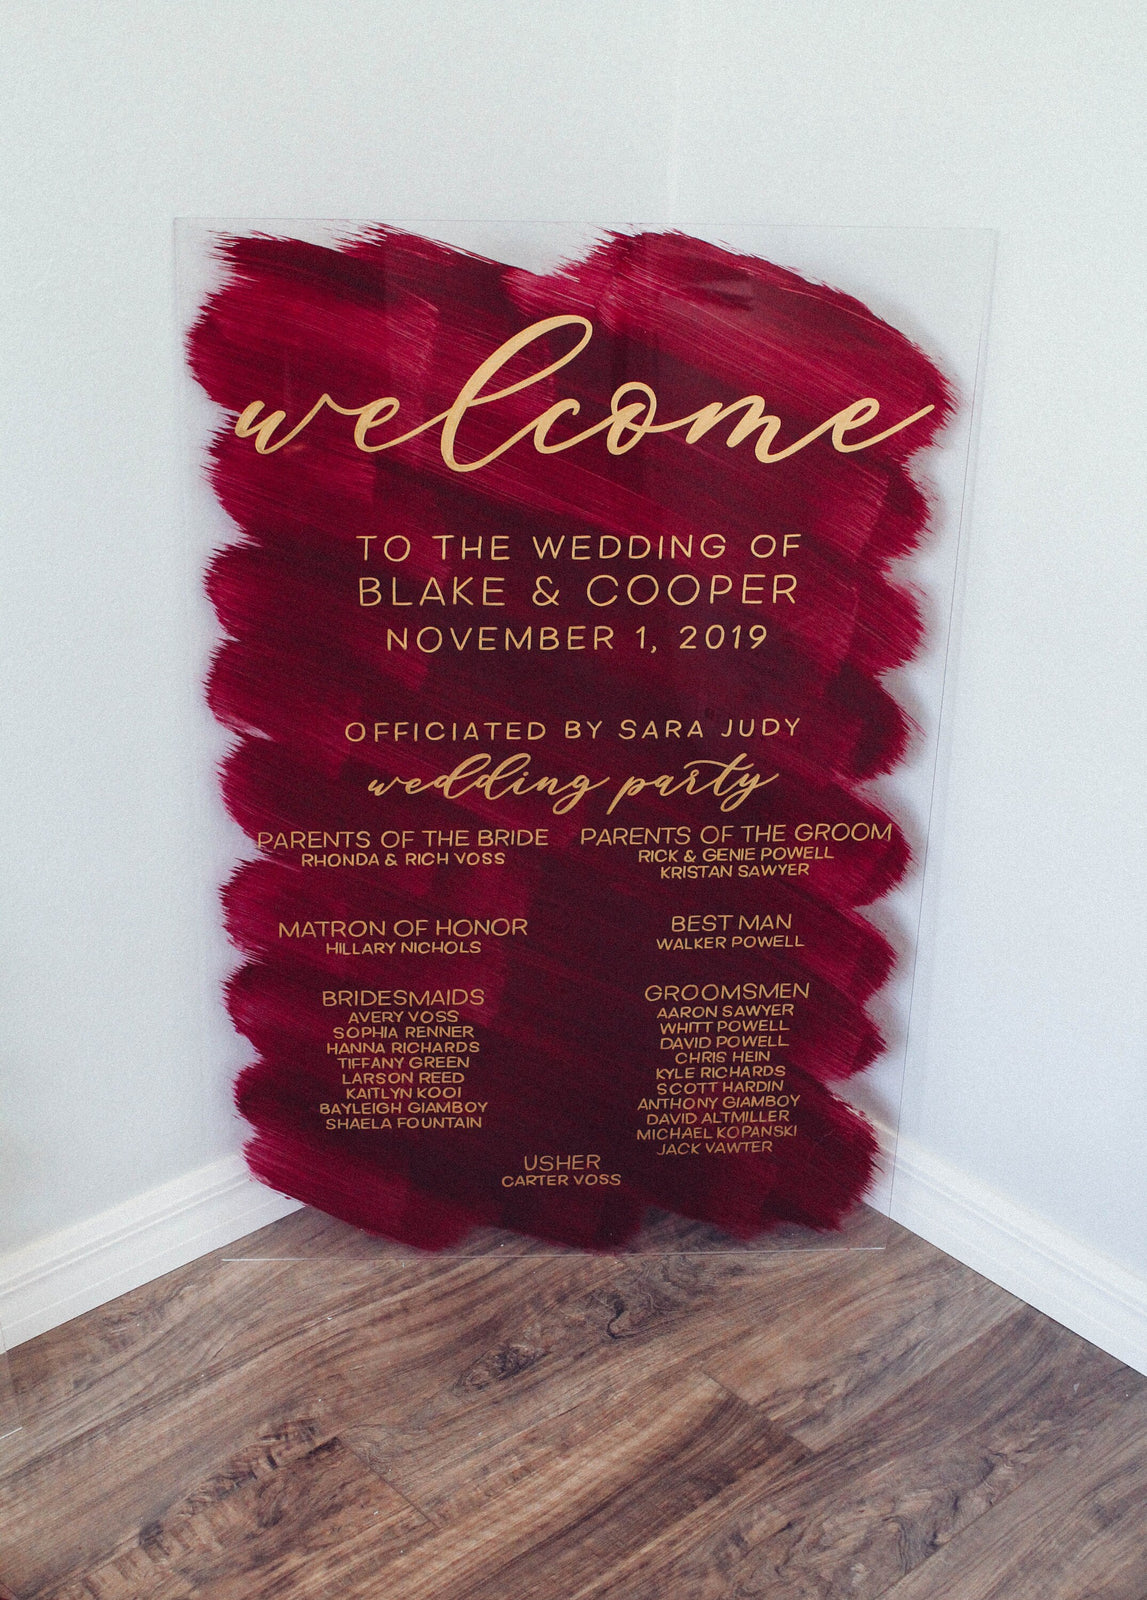 Wedding Program | Acrylic Wedding Sign | Wedding Party Sign | Acrylic Welcome Sign | Bridal Party Sign